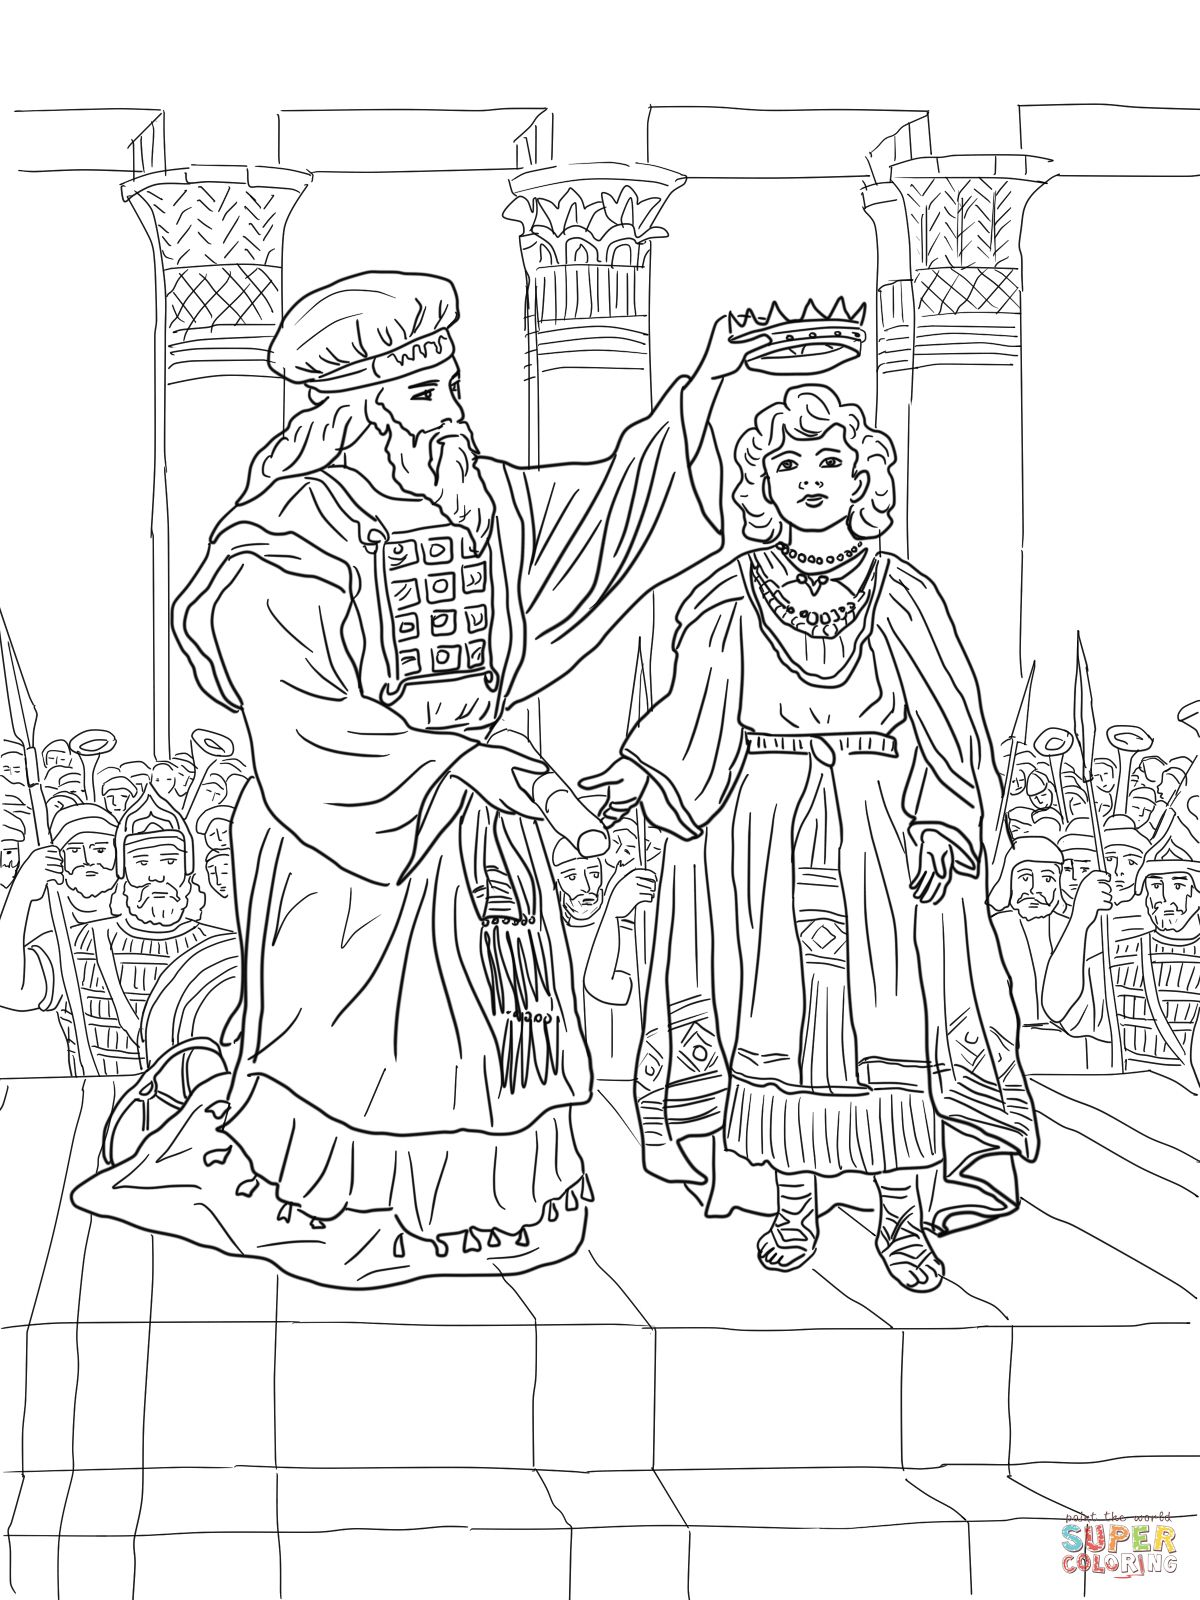 king josiah coloring page king josiah coloring page best of boy king josiah coloring king josiah page coloring